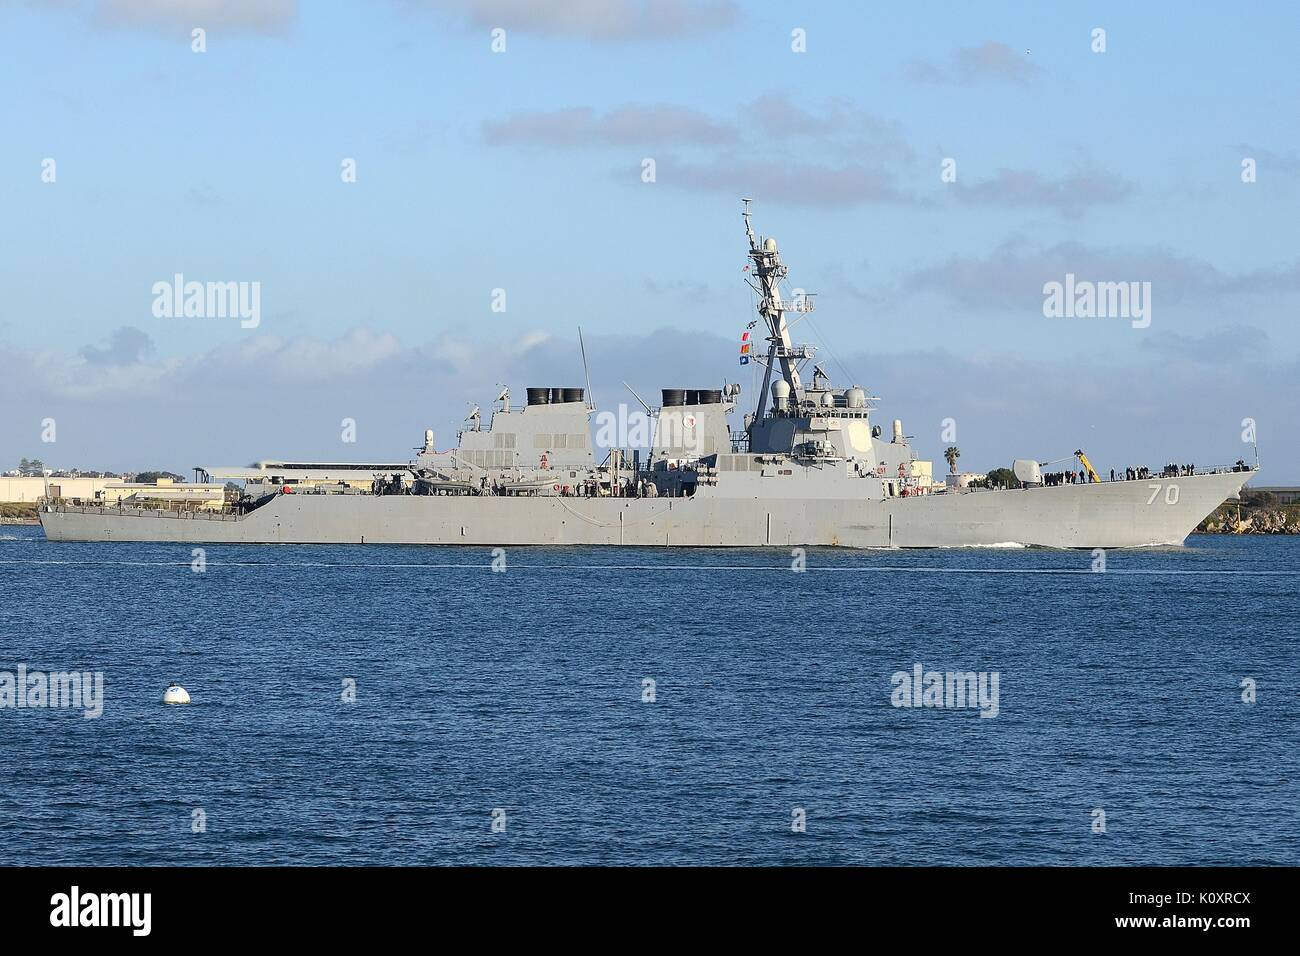 DDG-70 USS HOPPER, ARLEIGH BURKE CLASS GUIDED MISSILE DESTROYER OF THE U.S. NAVY - Stock Image